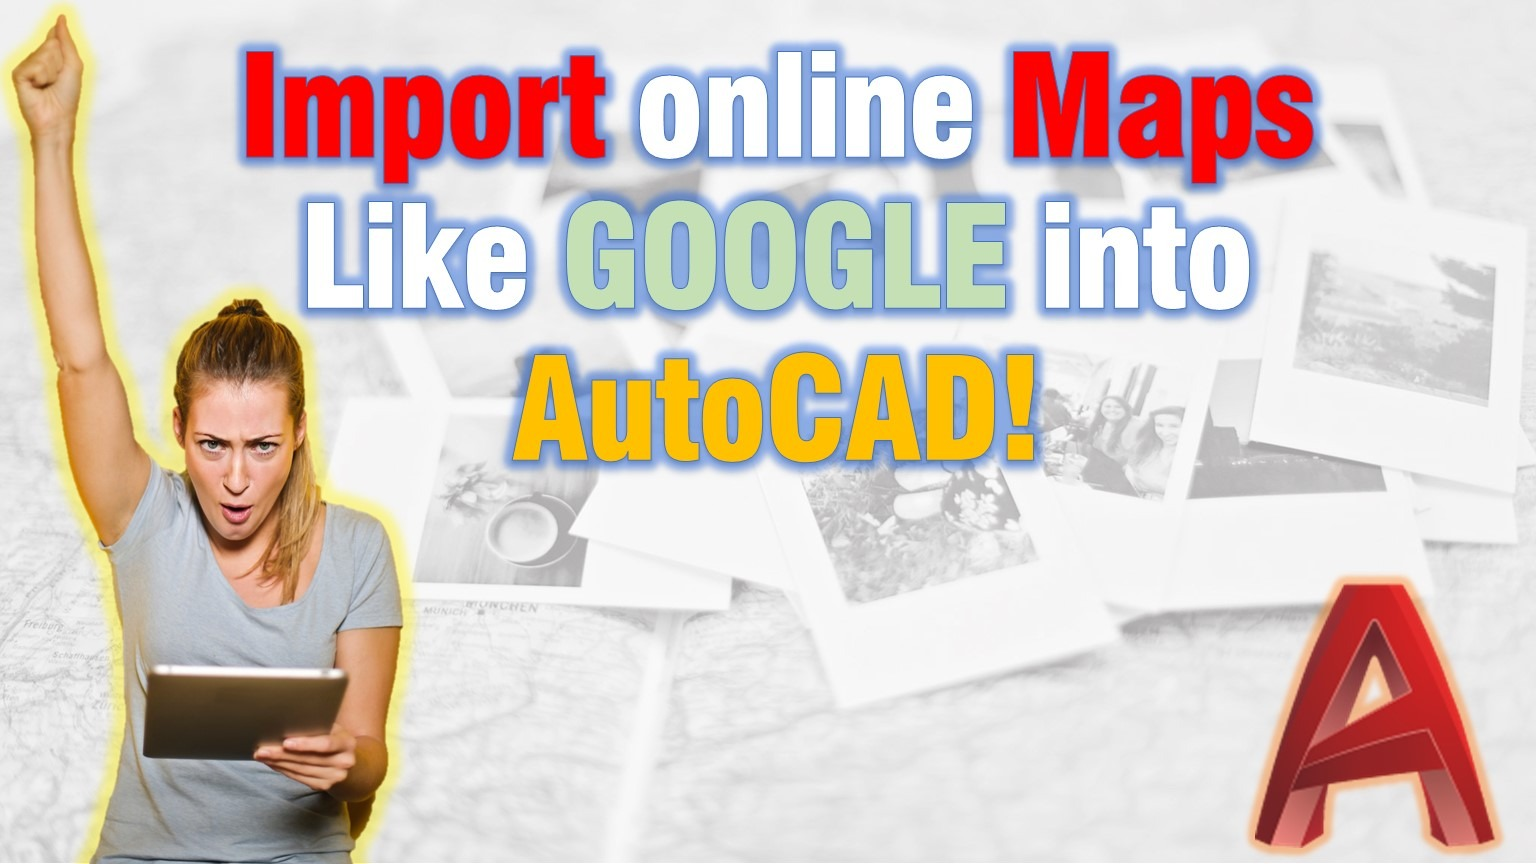 Import online maps into AutoCAD